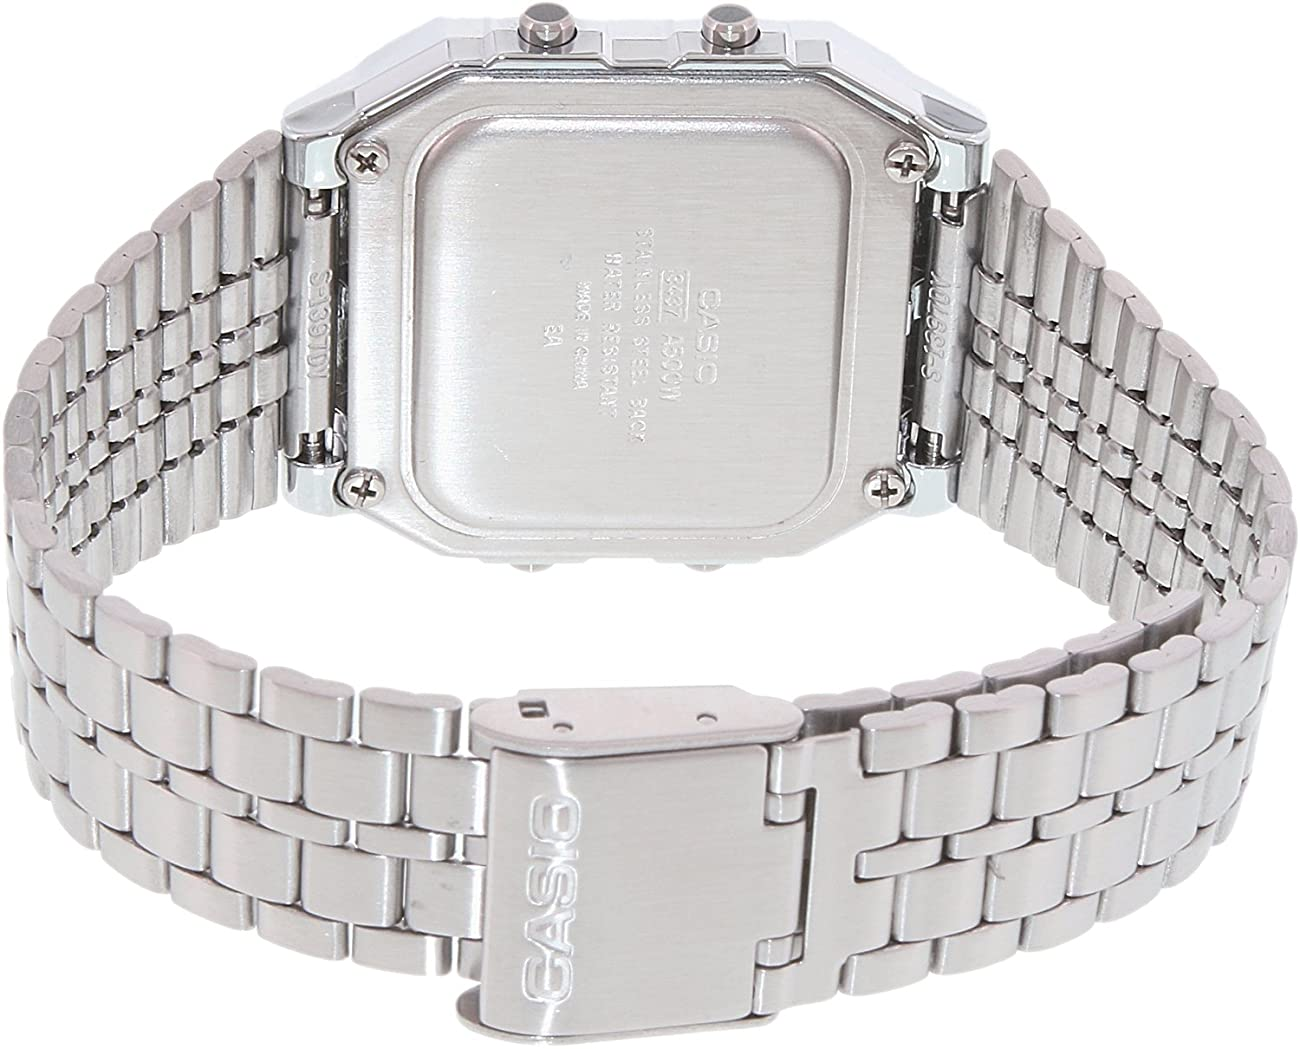 Casio Vintage A500WA-1D - Unisex Watch 2